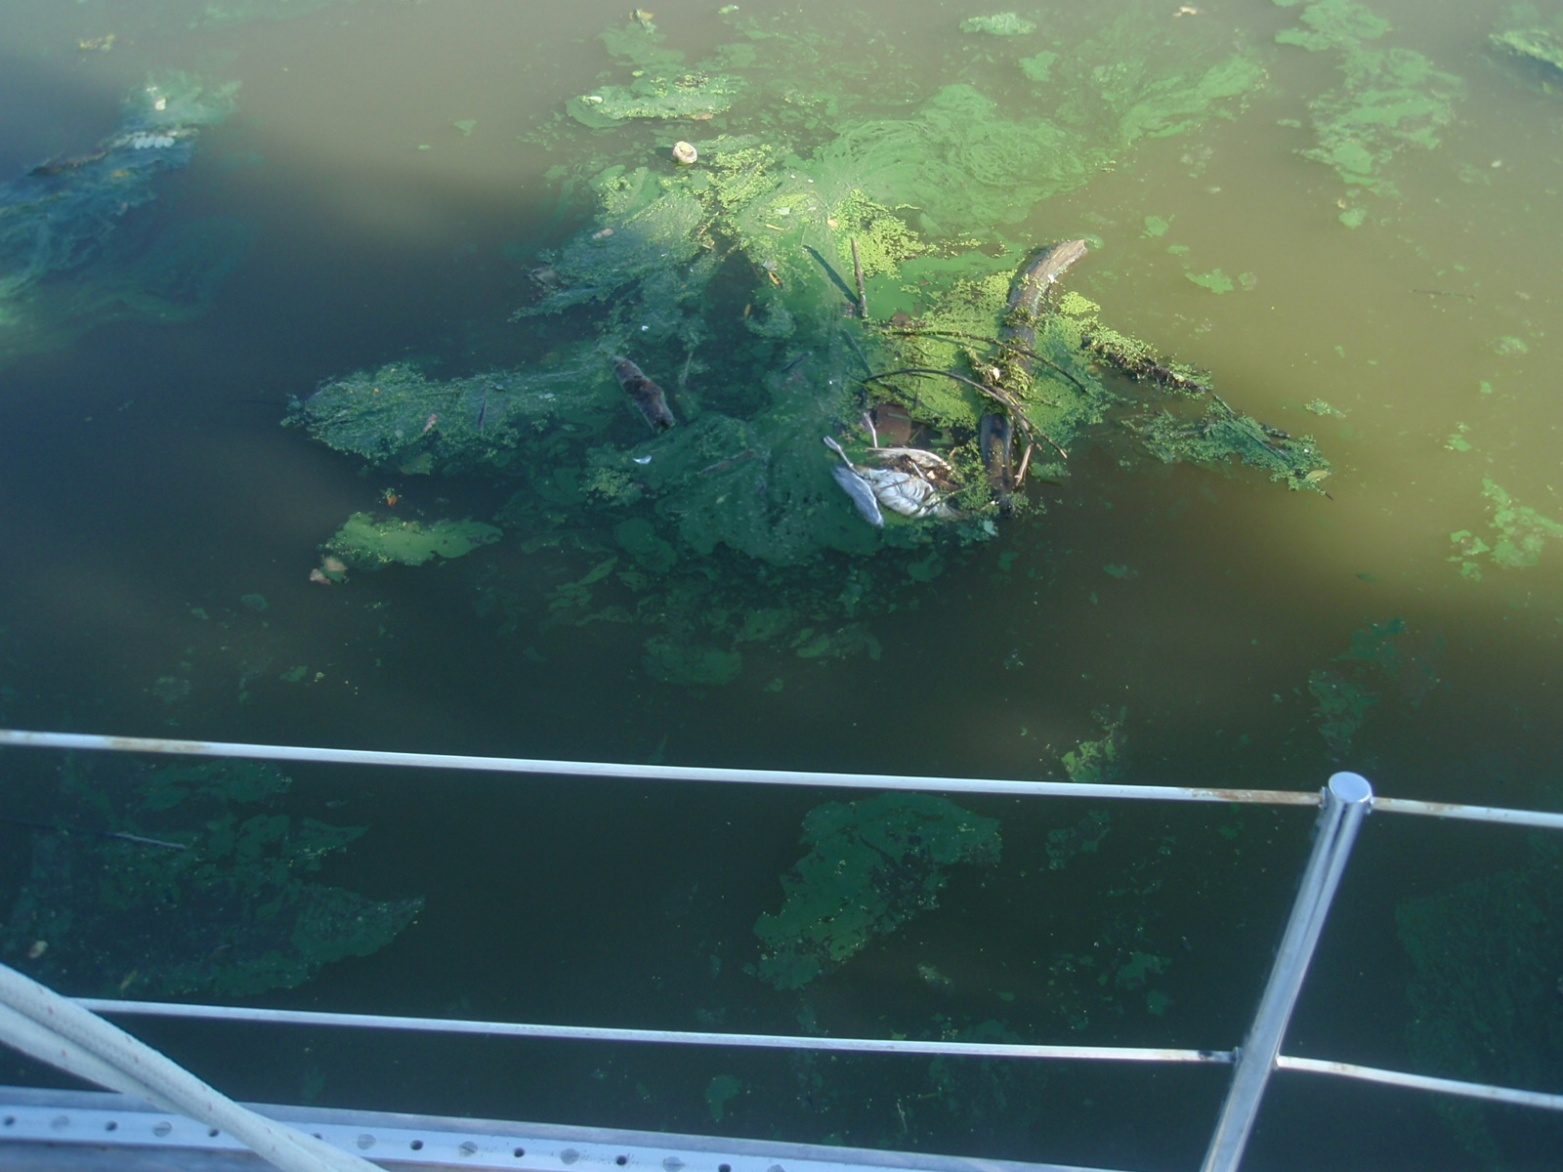 Click image for larger version  Name:P8140077 FOX RIVER sewer.jpg Views:117 Size:393.0 KB ID:52241